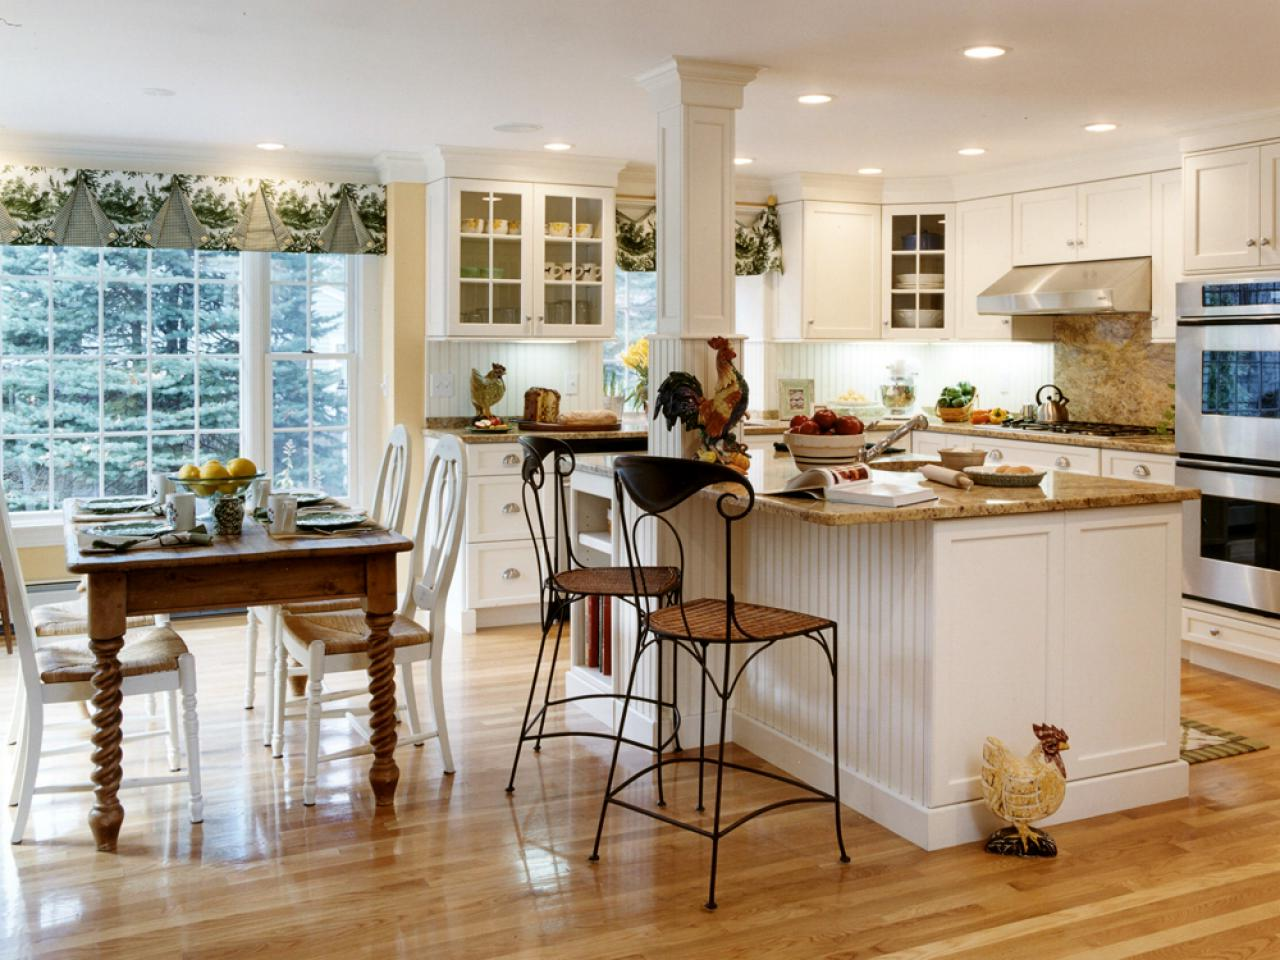 Wooden Floor Kitchen Wooden Floor In The Kitchen Country Style All About Doors